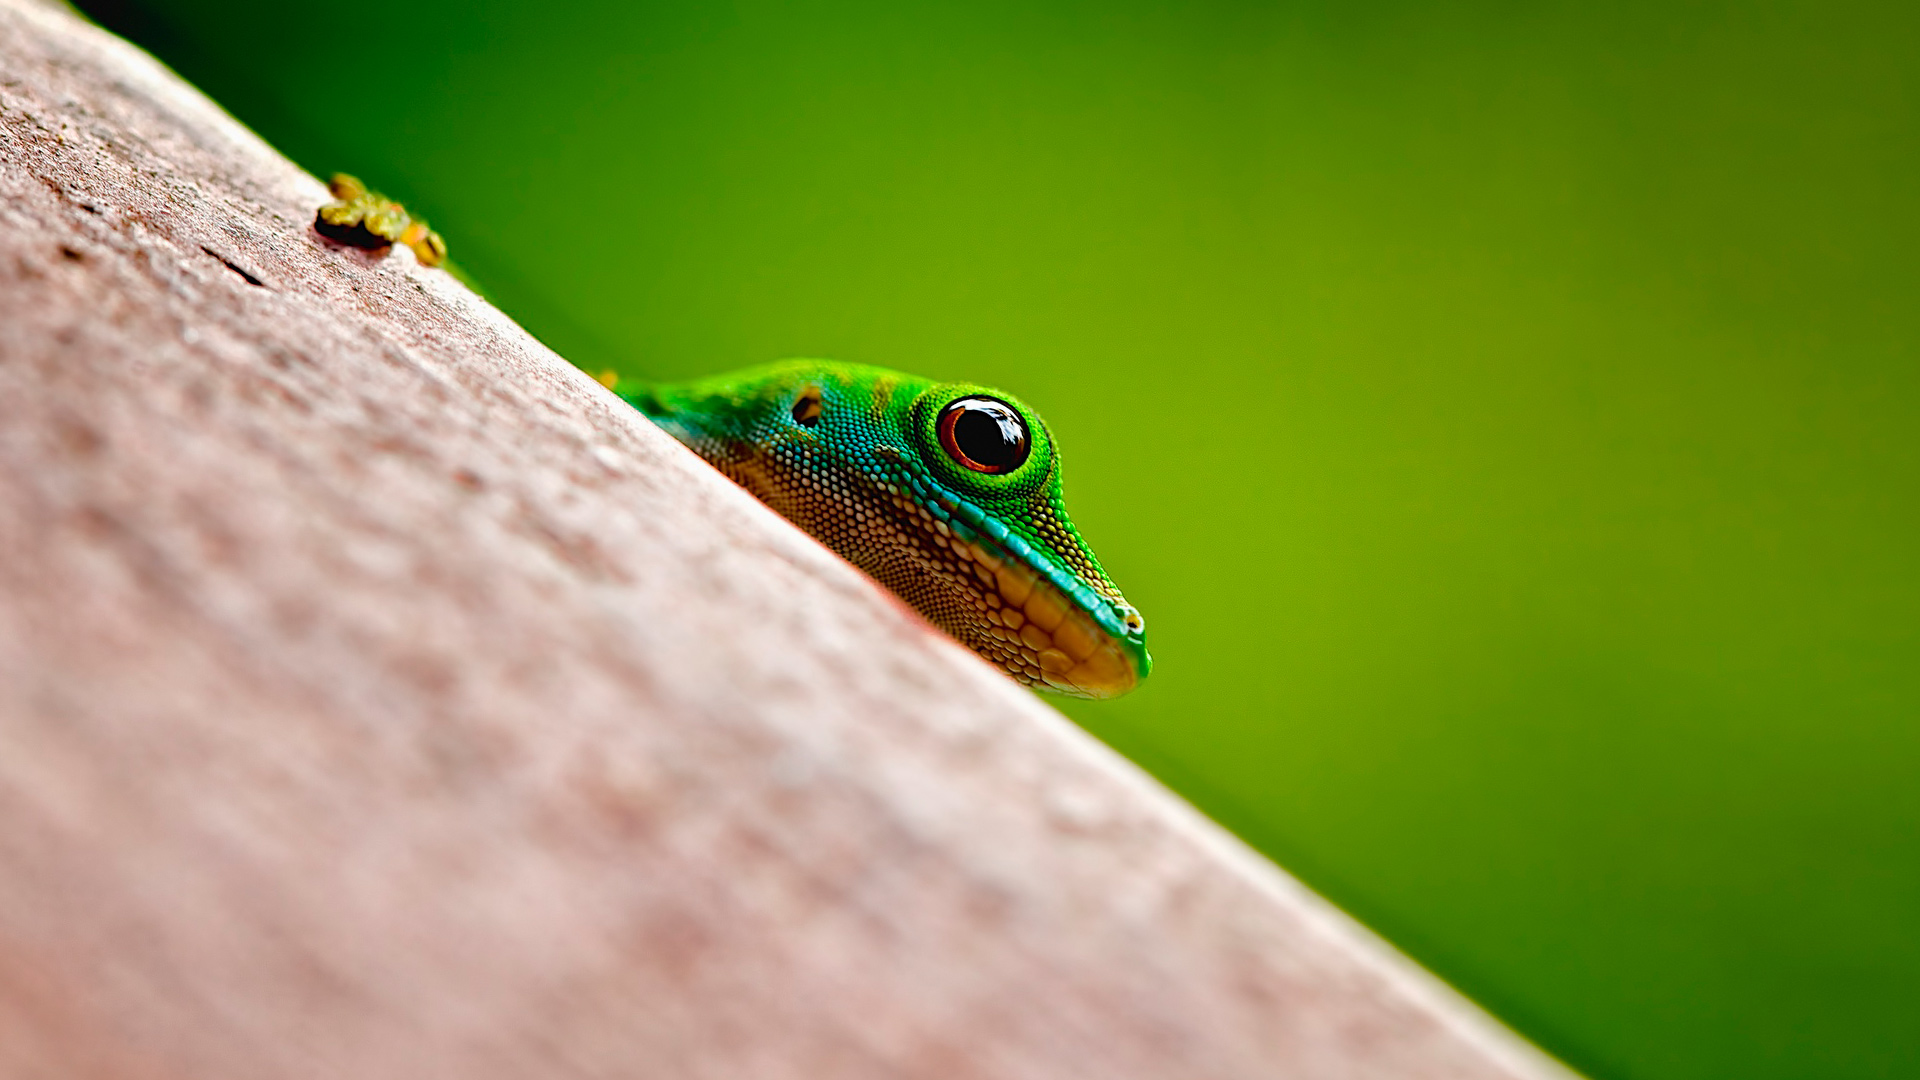 Frog Gionee Android Stock Wallpaper Download - High